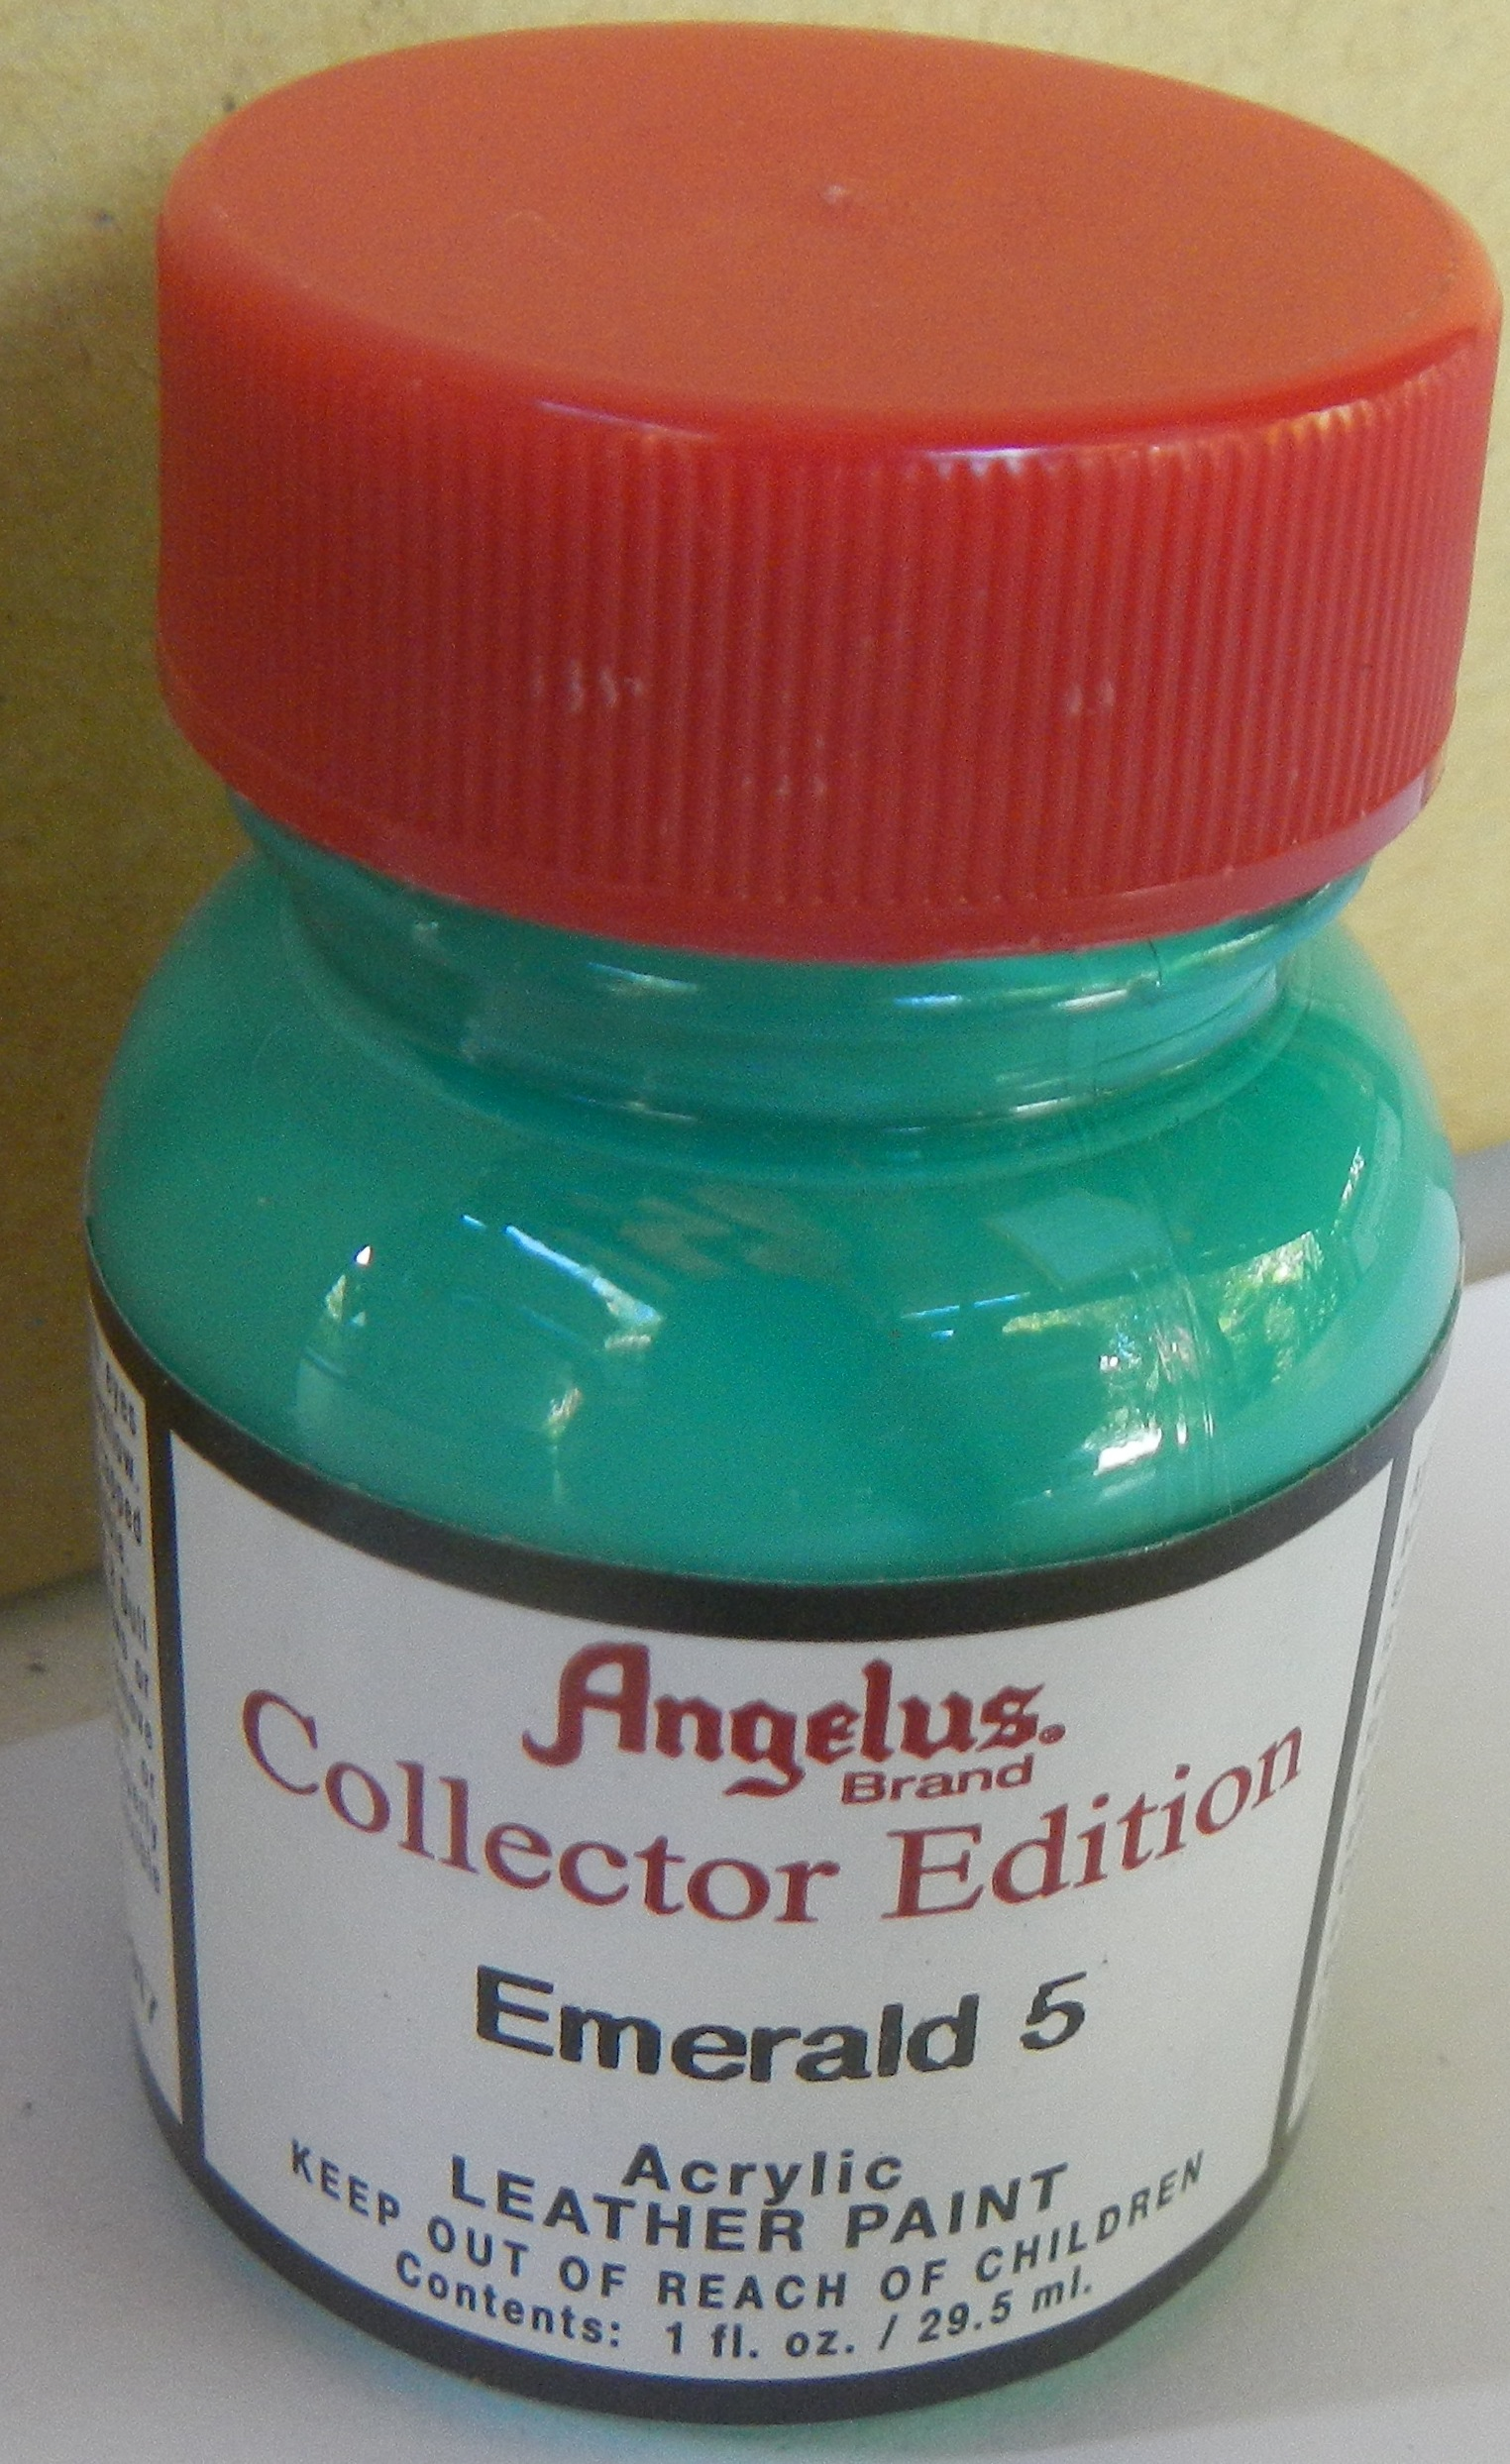 Angelus Emerald 5 Collector Edition